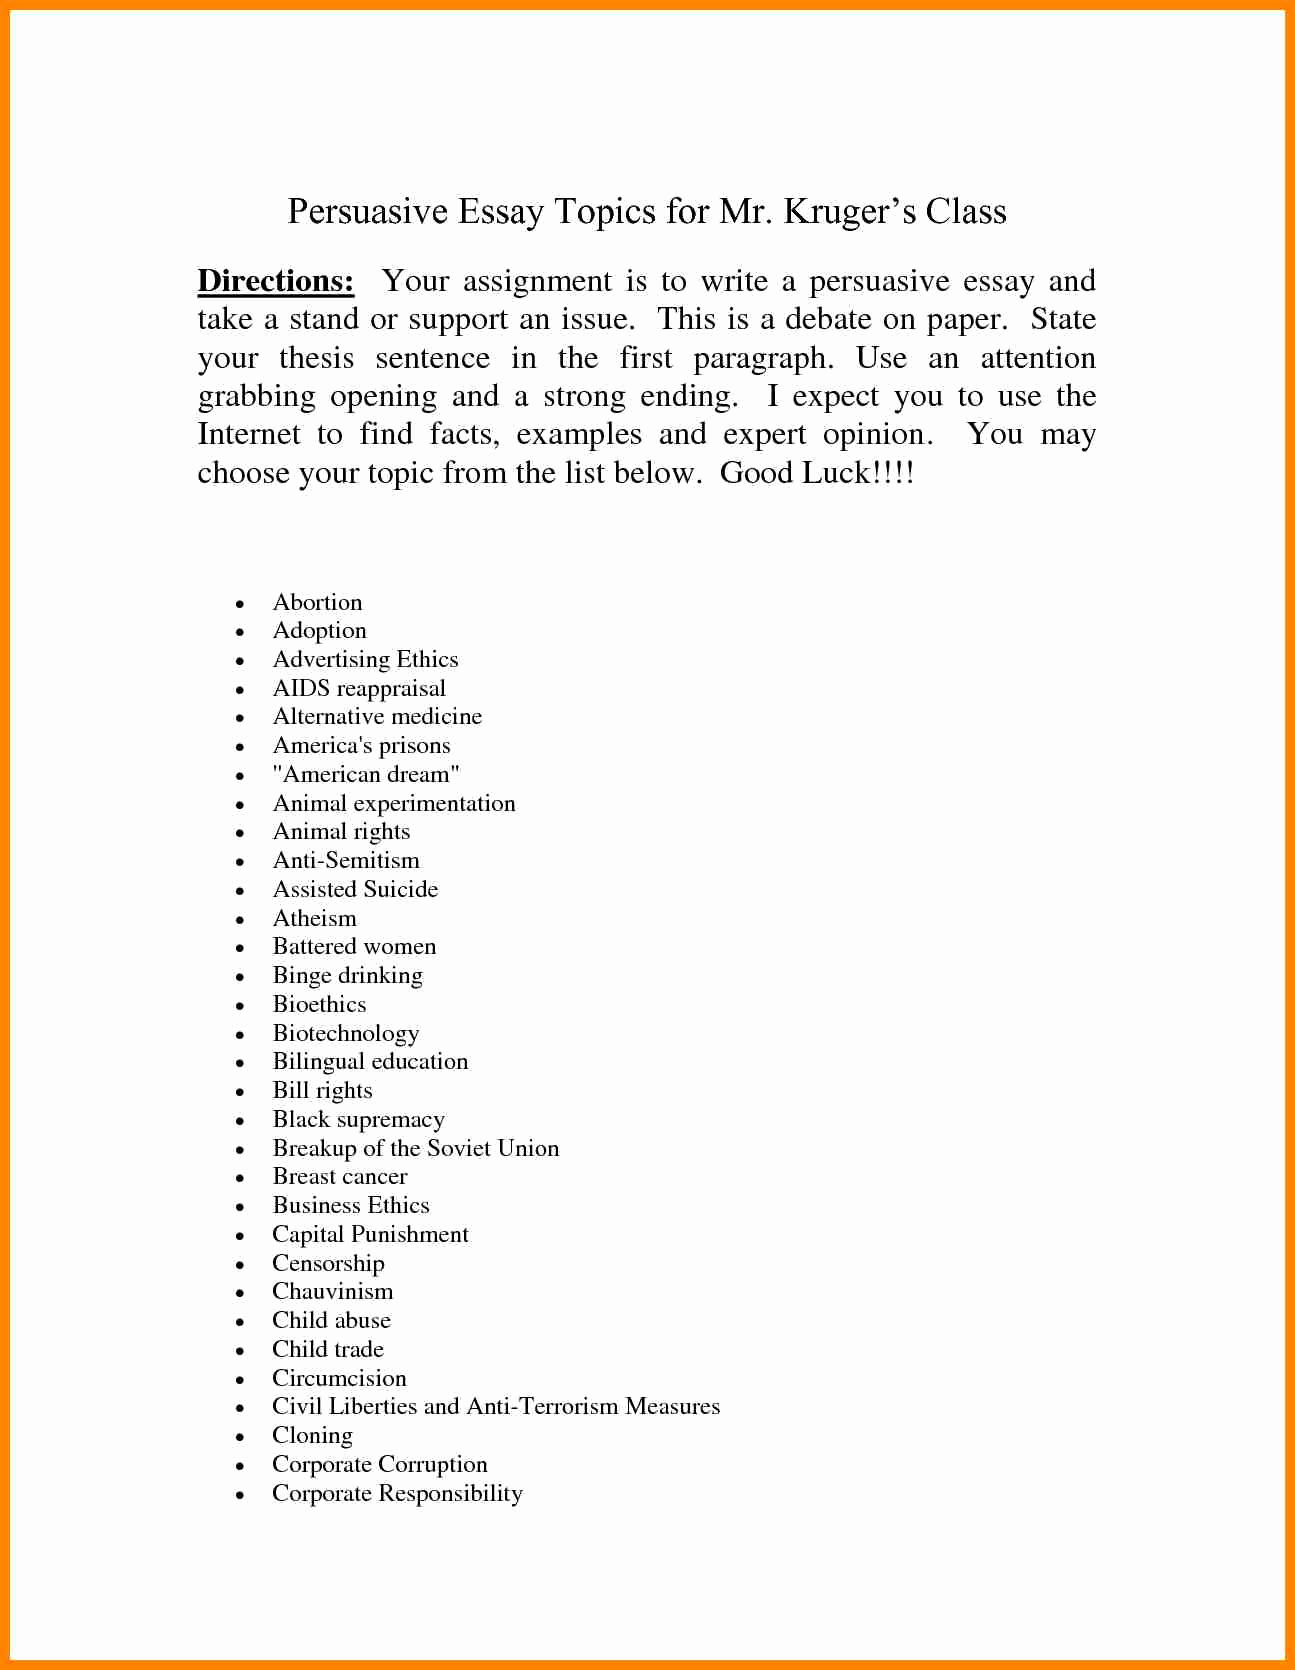 003 Essay Example Topics For Persuasive An Of Censorship Music About Speech Rap Research Paper Argumentative Interesting Breathtaking A Best Top 10 Controversial Full